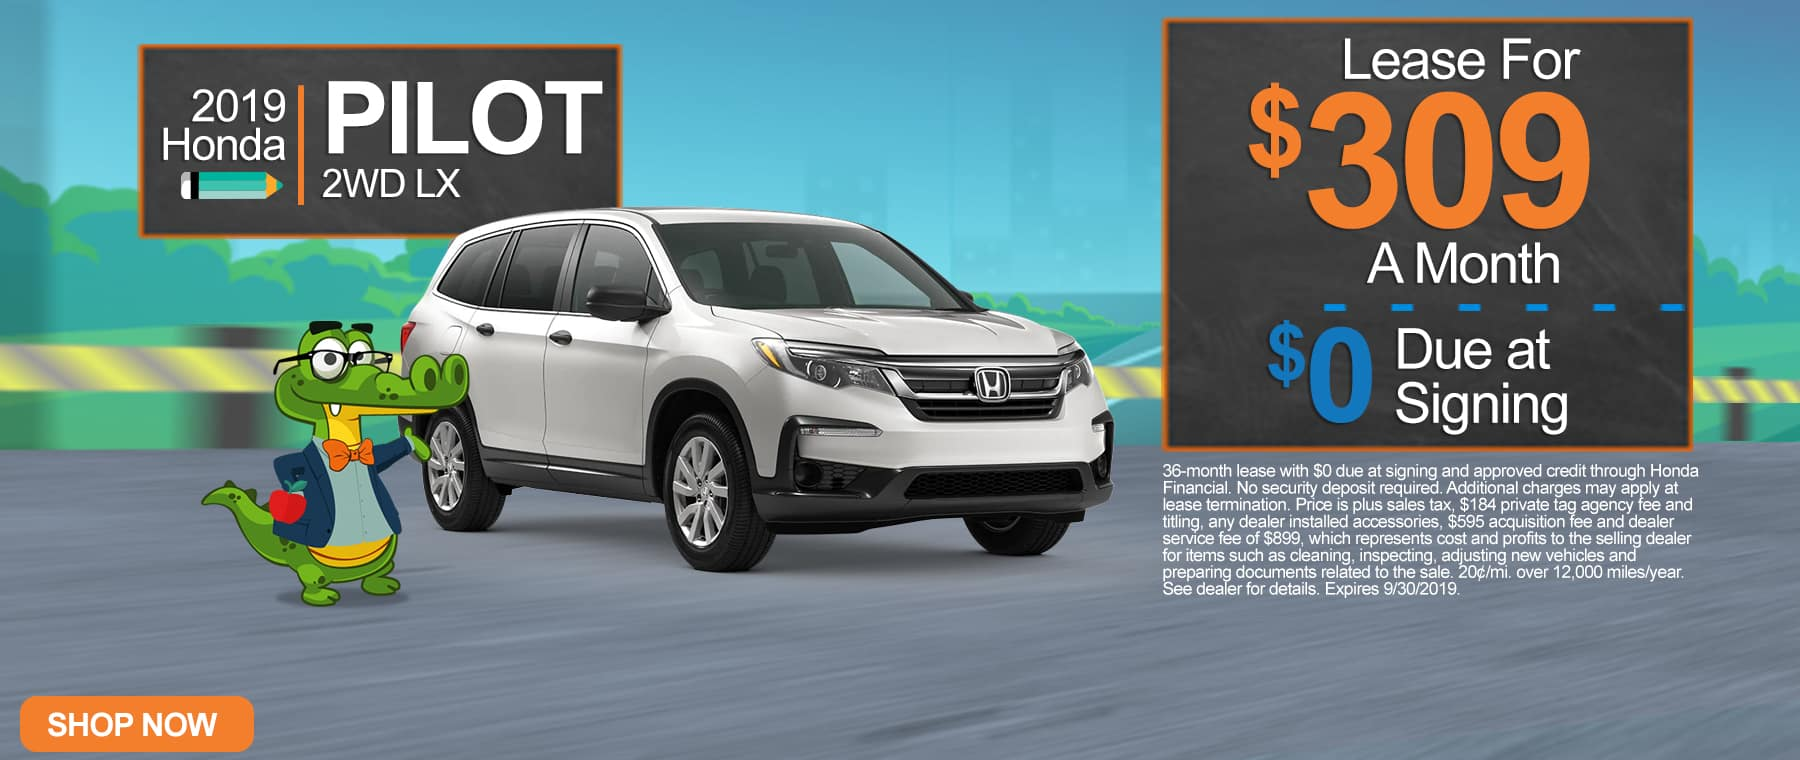 New 2019 Honda Pilot 2WD LX | $309 A Month | $0 Due At Signing